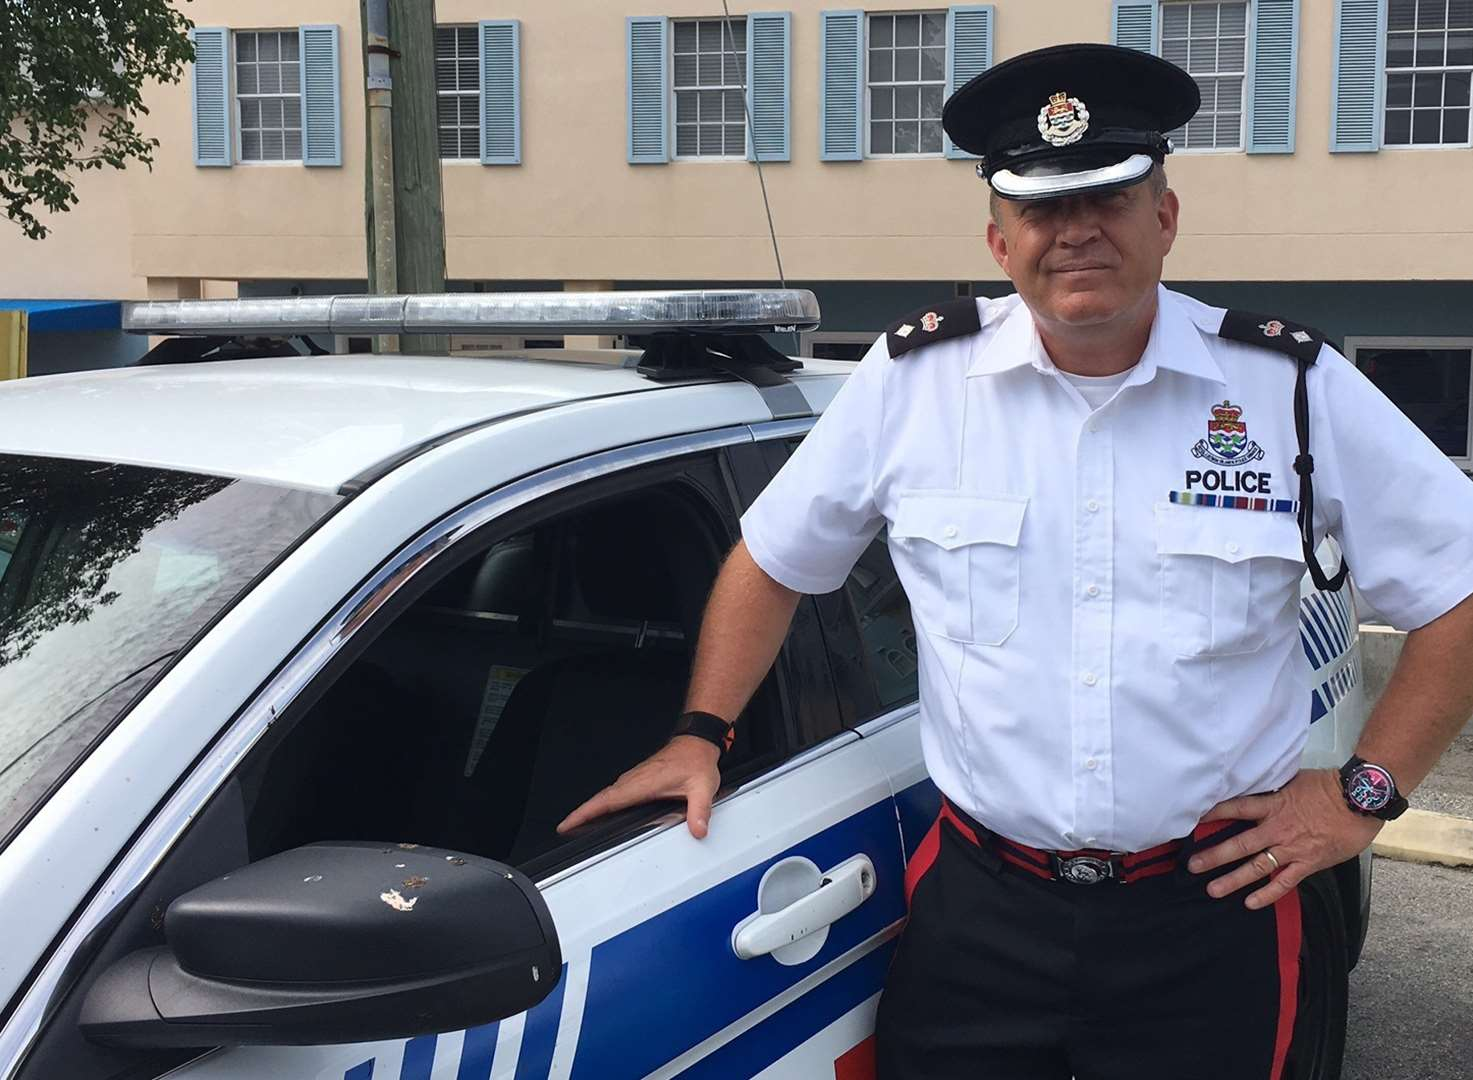 Police chief back in the force with exotic new beat